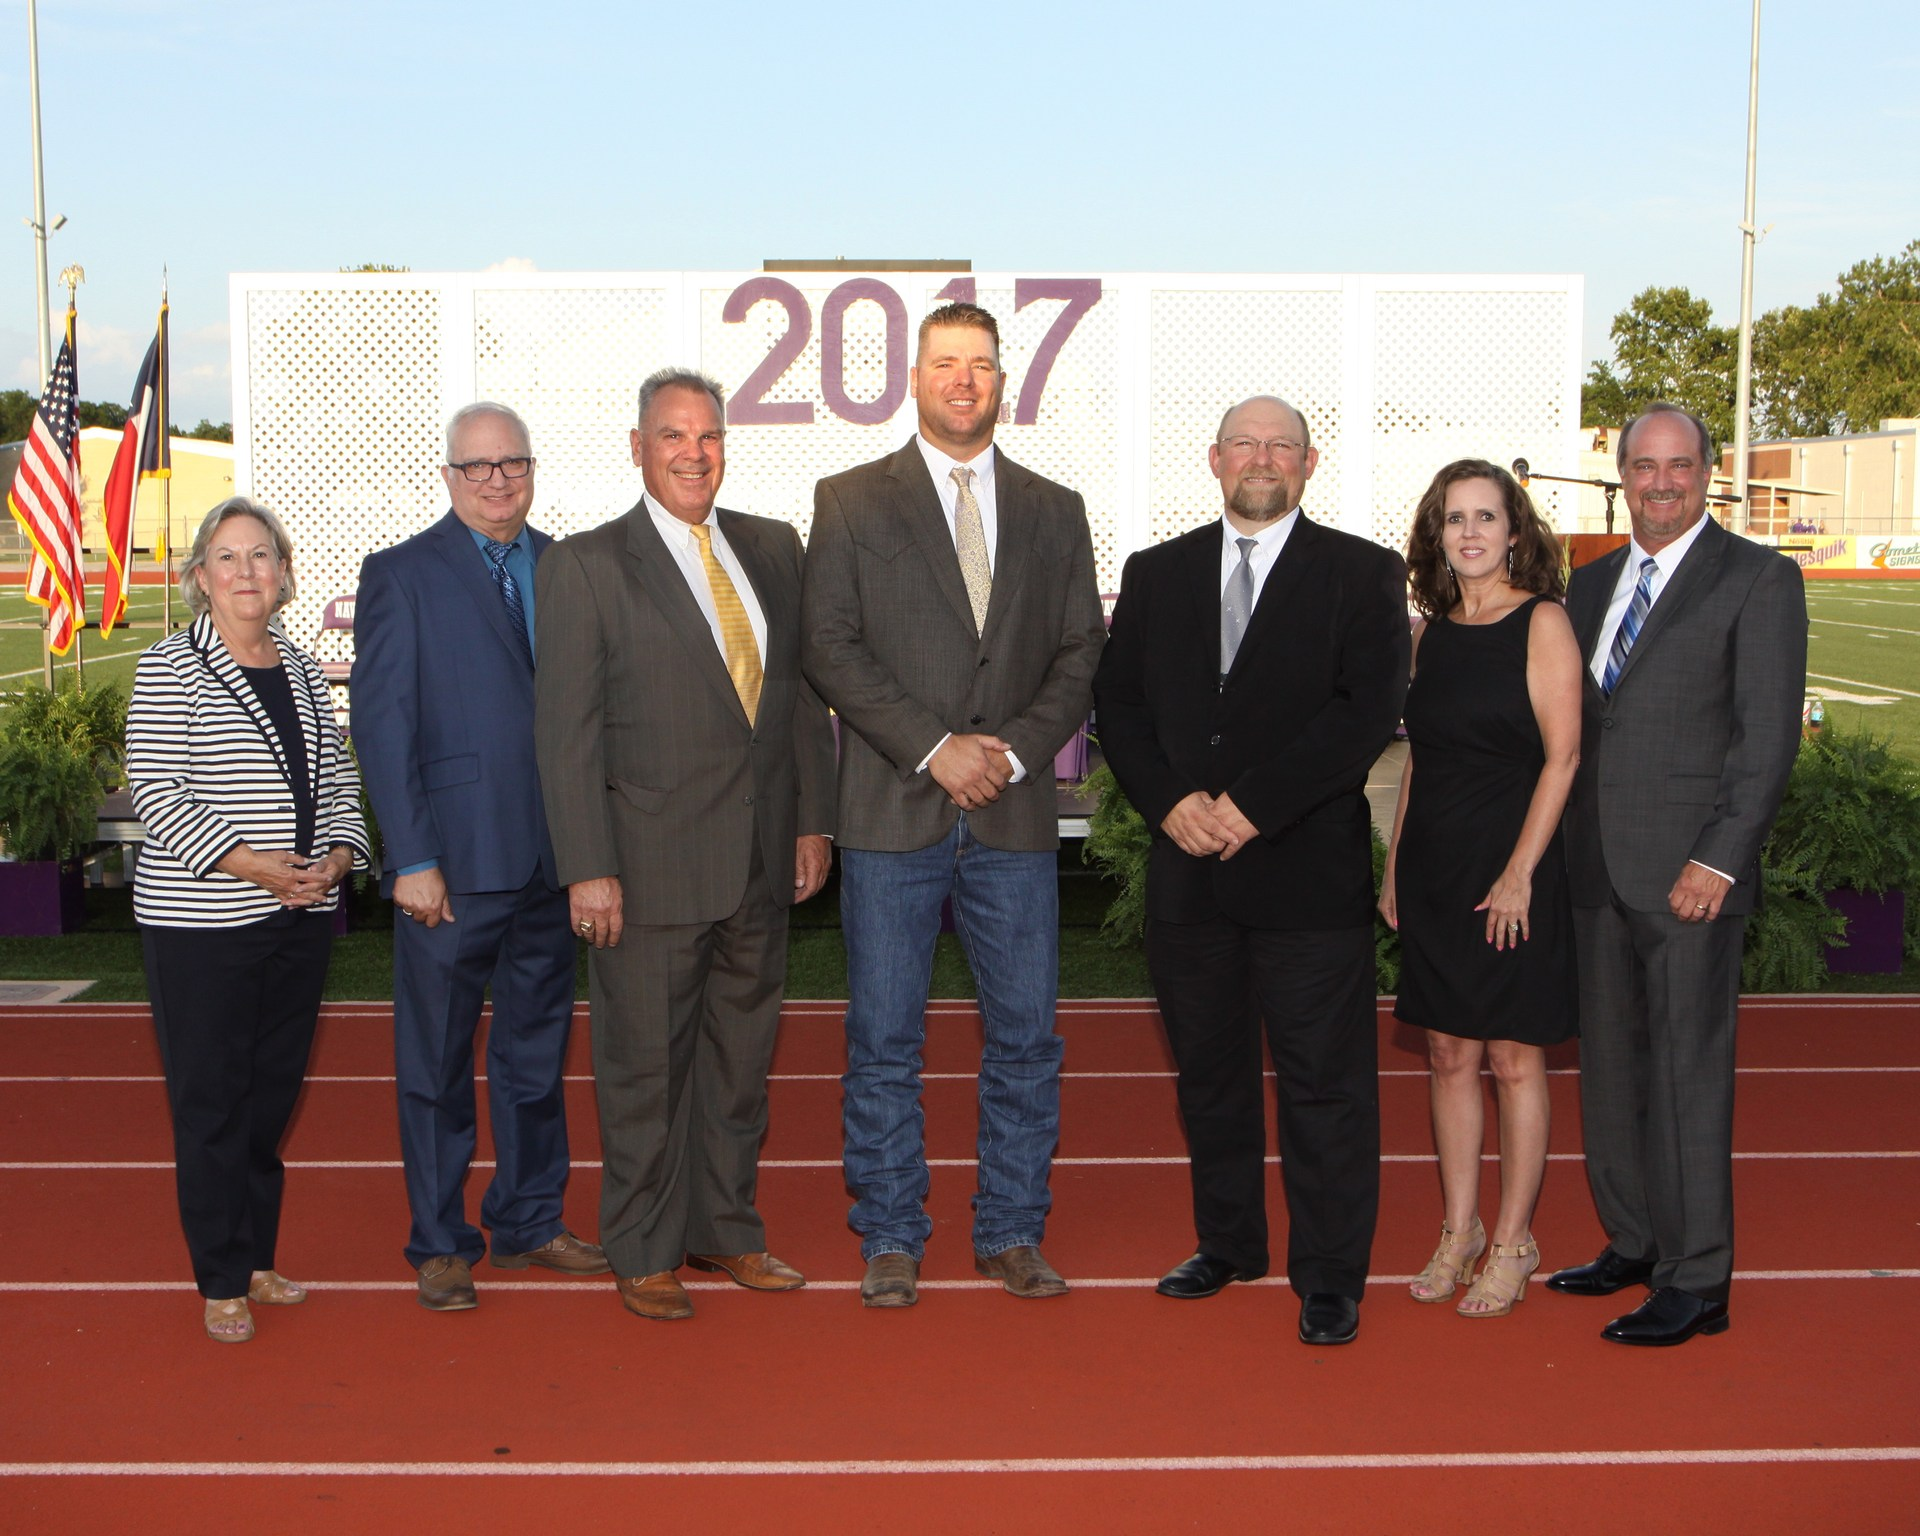 2016-2017 School Board L-R:  Superintendent Dee Carter, Rick Martin, Dr. Greg Gilcrease, Clint Scheib, Hank Dietert, Renee Rehfeld and Tracy Large.  Donna Gilliam not pictured.